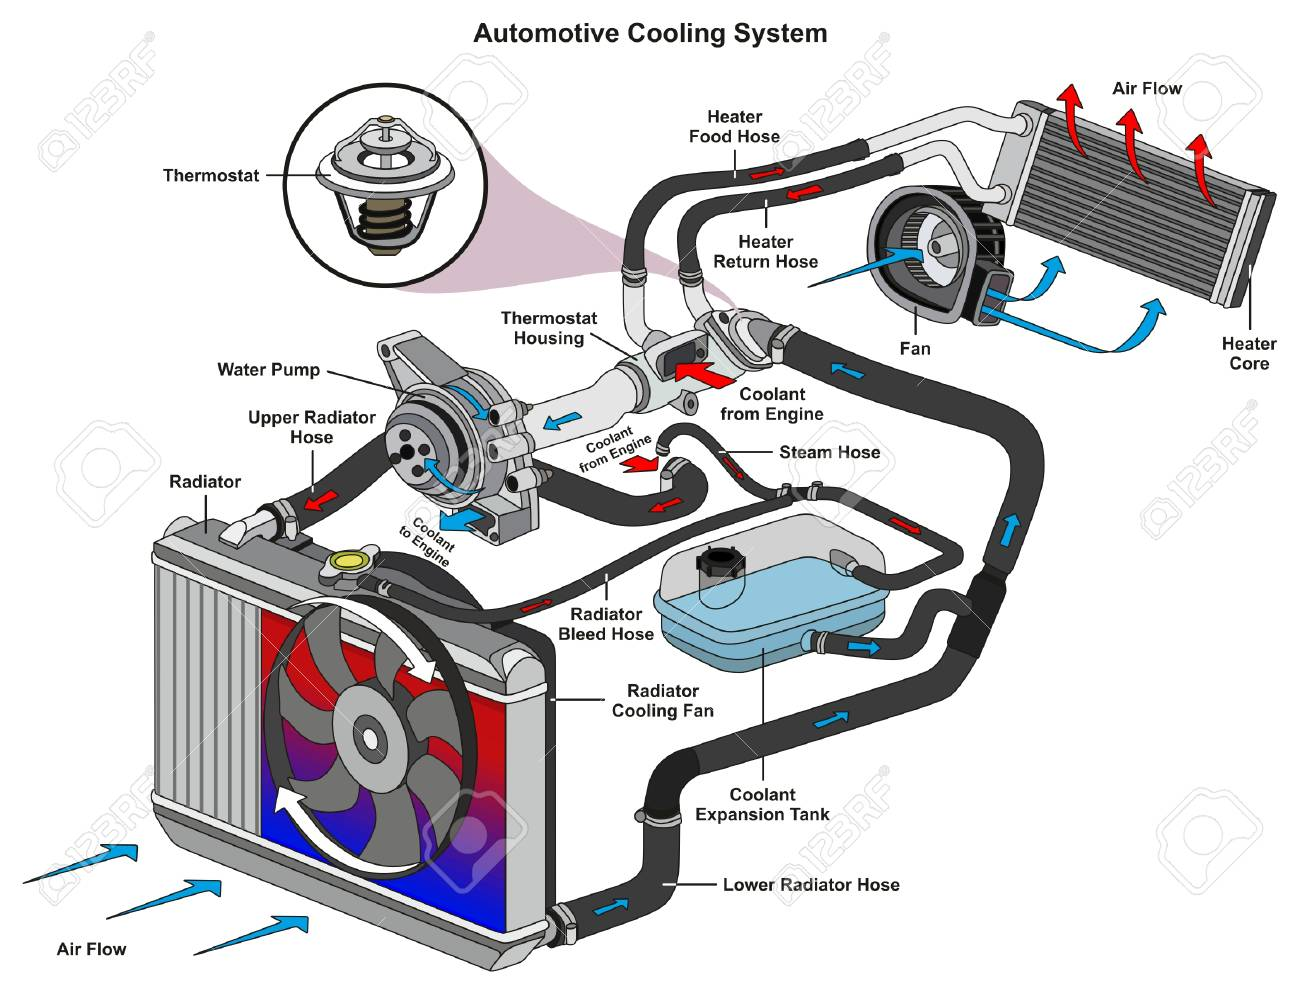 Automotive Cooling System infographic diagram showing process and all parts included radiator hoses coolant flow thermostat fan tank and air flow for mechanic and road traffic safety science education - 87963547